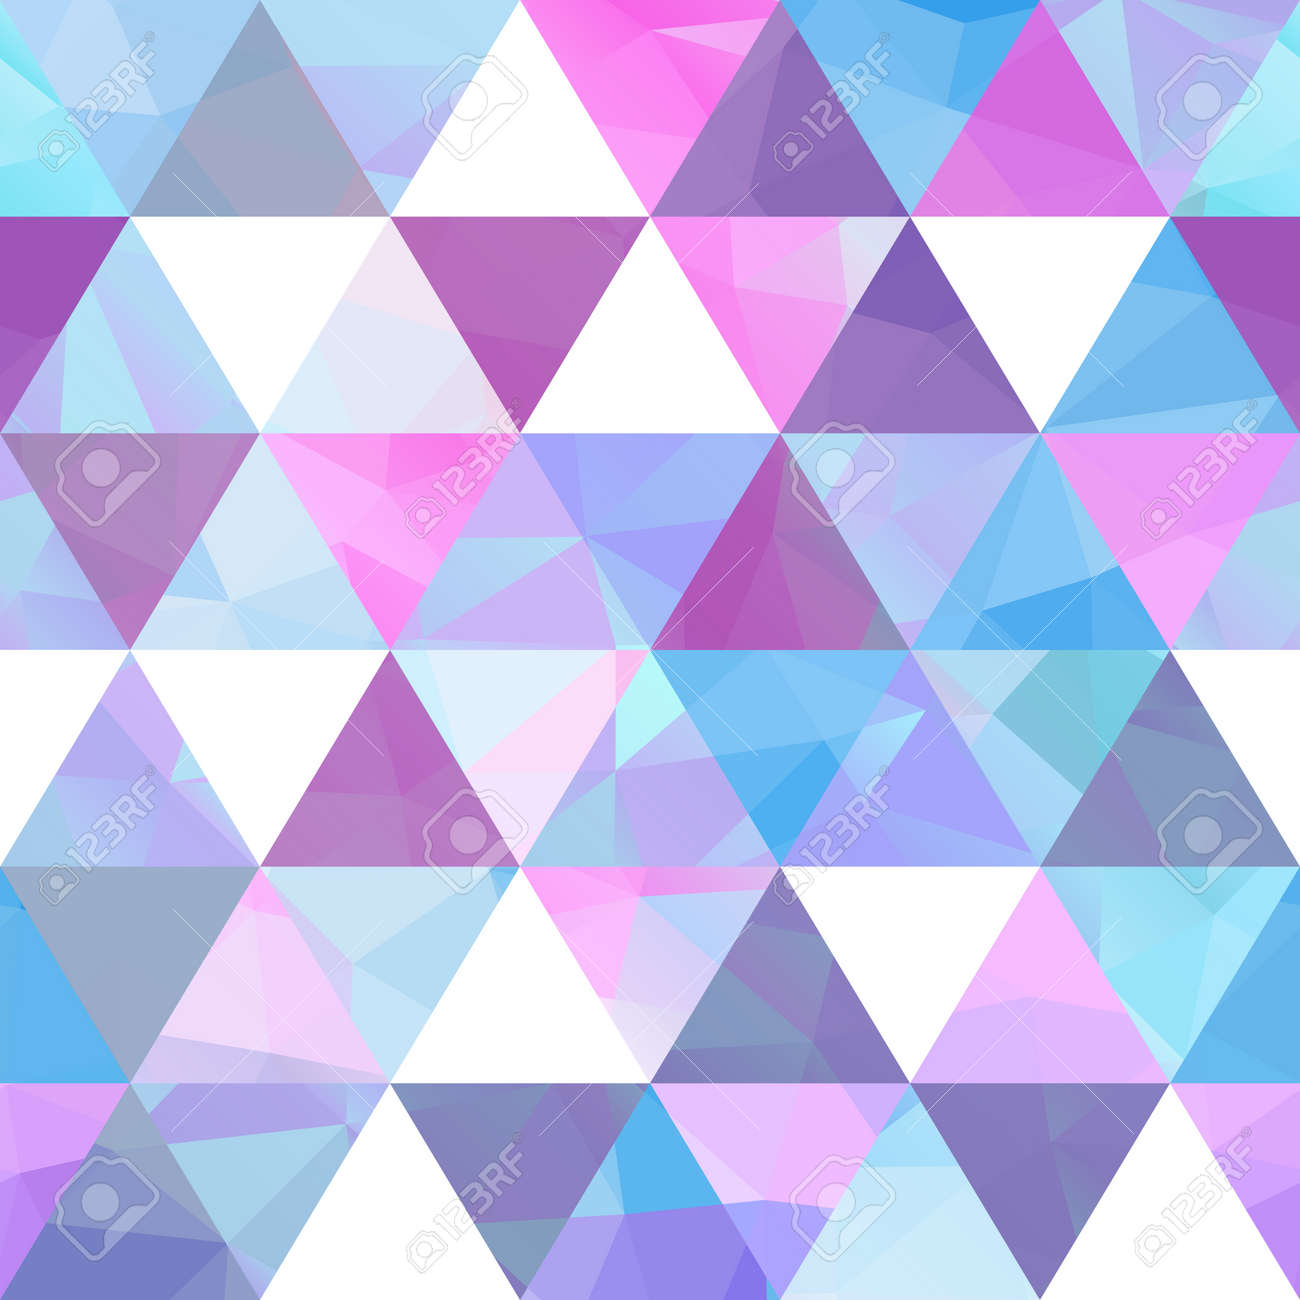 vintage patterns of geometric shapes. colorful mosaic background